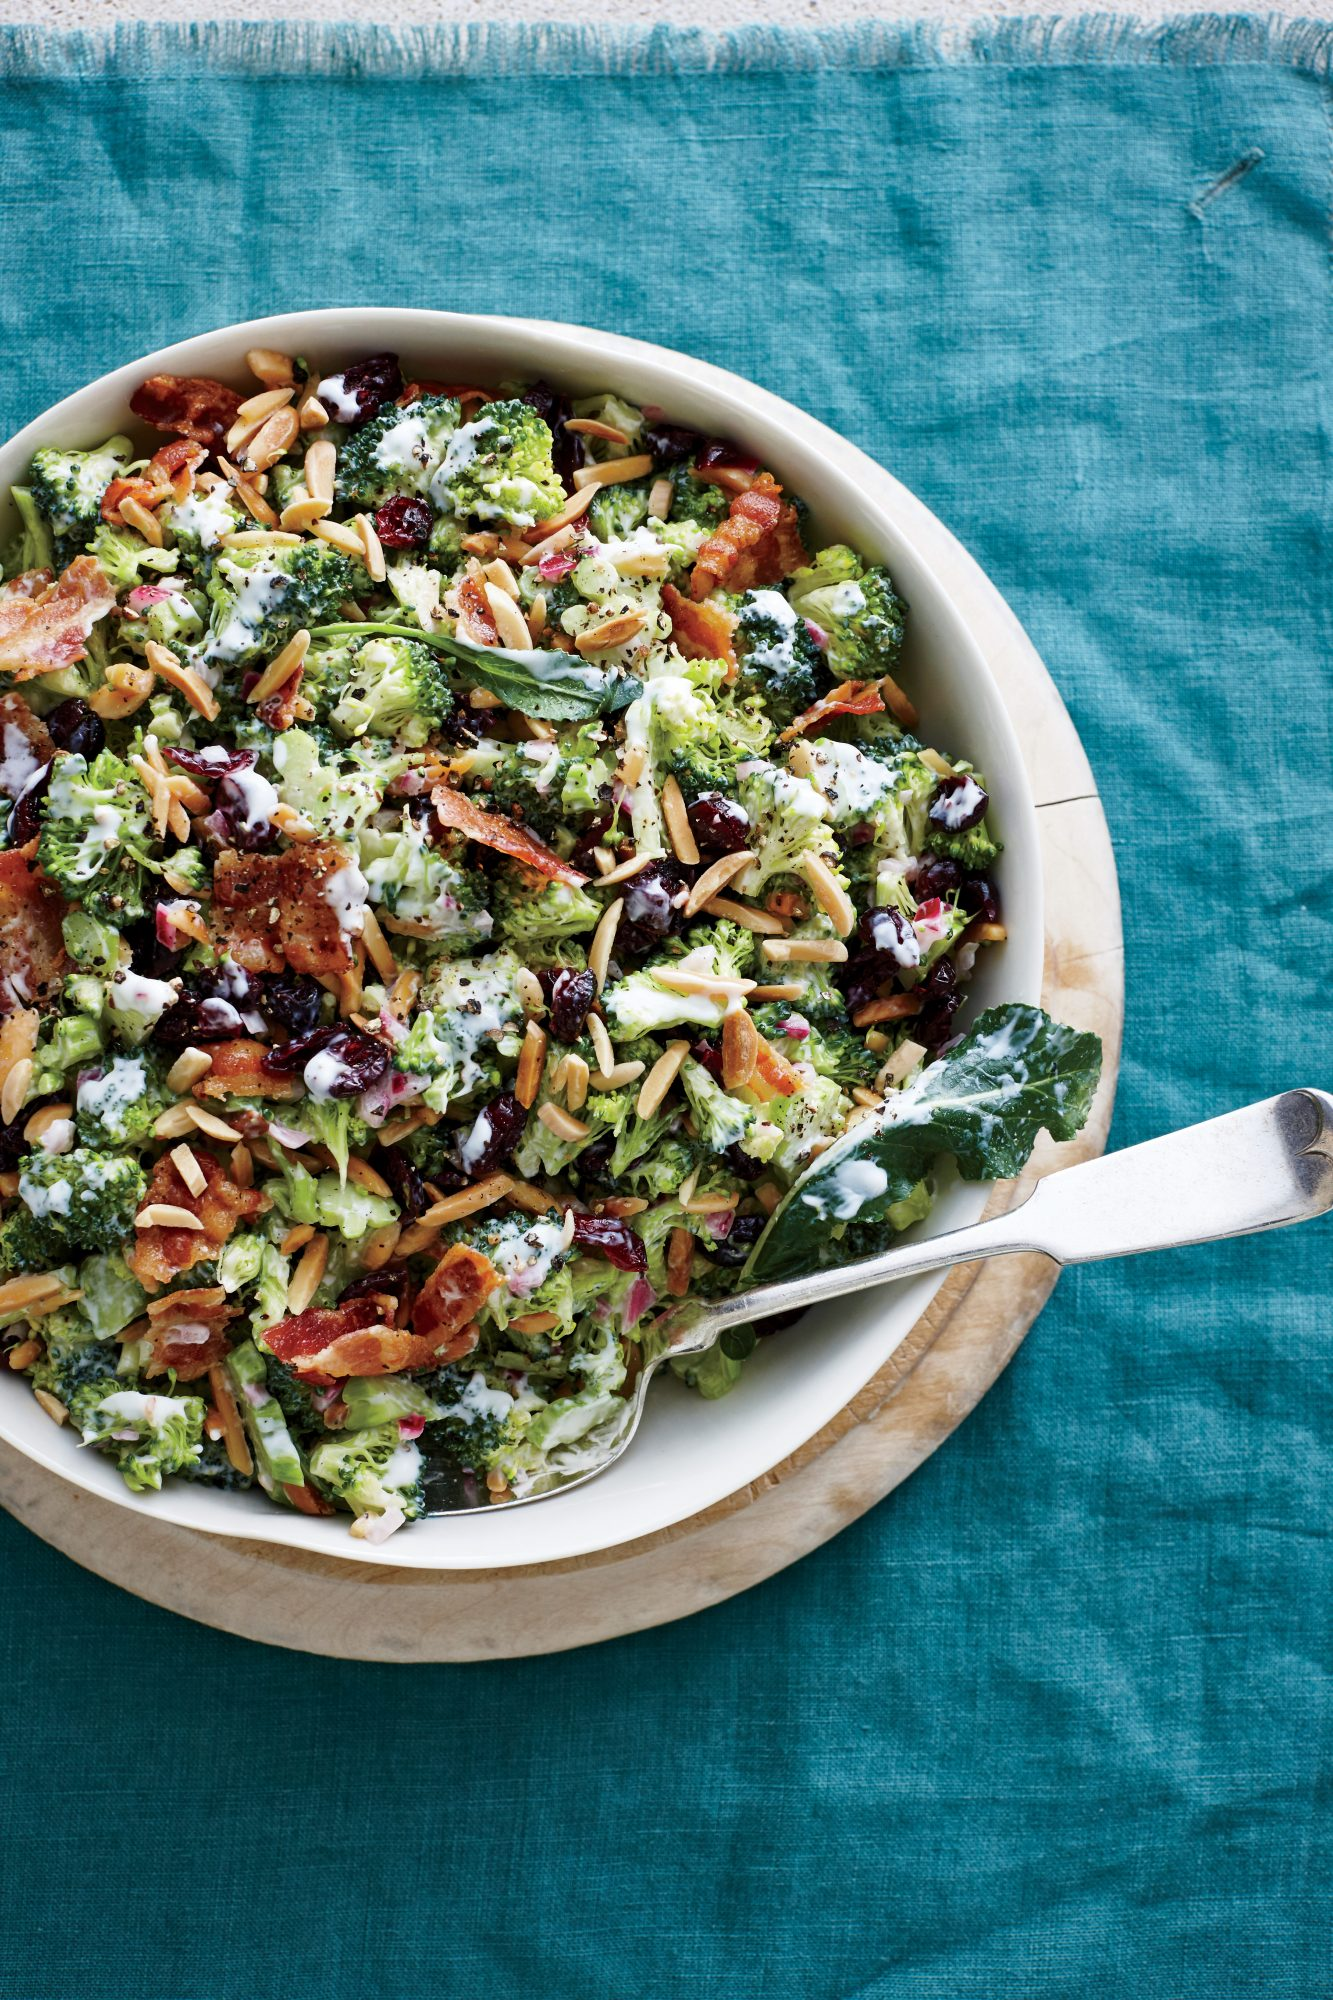 Cranberry Almond Broccoli Salad